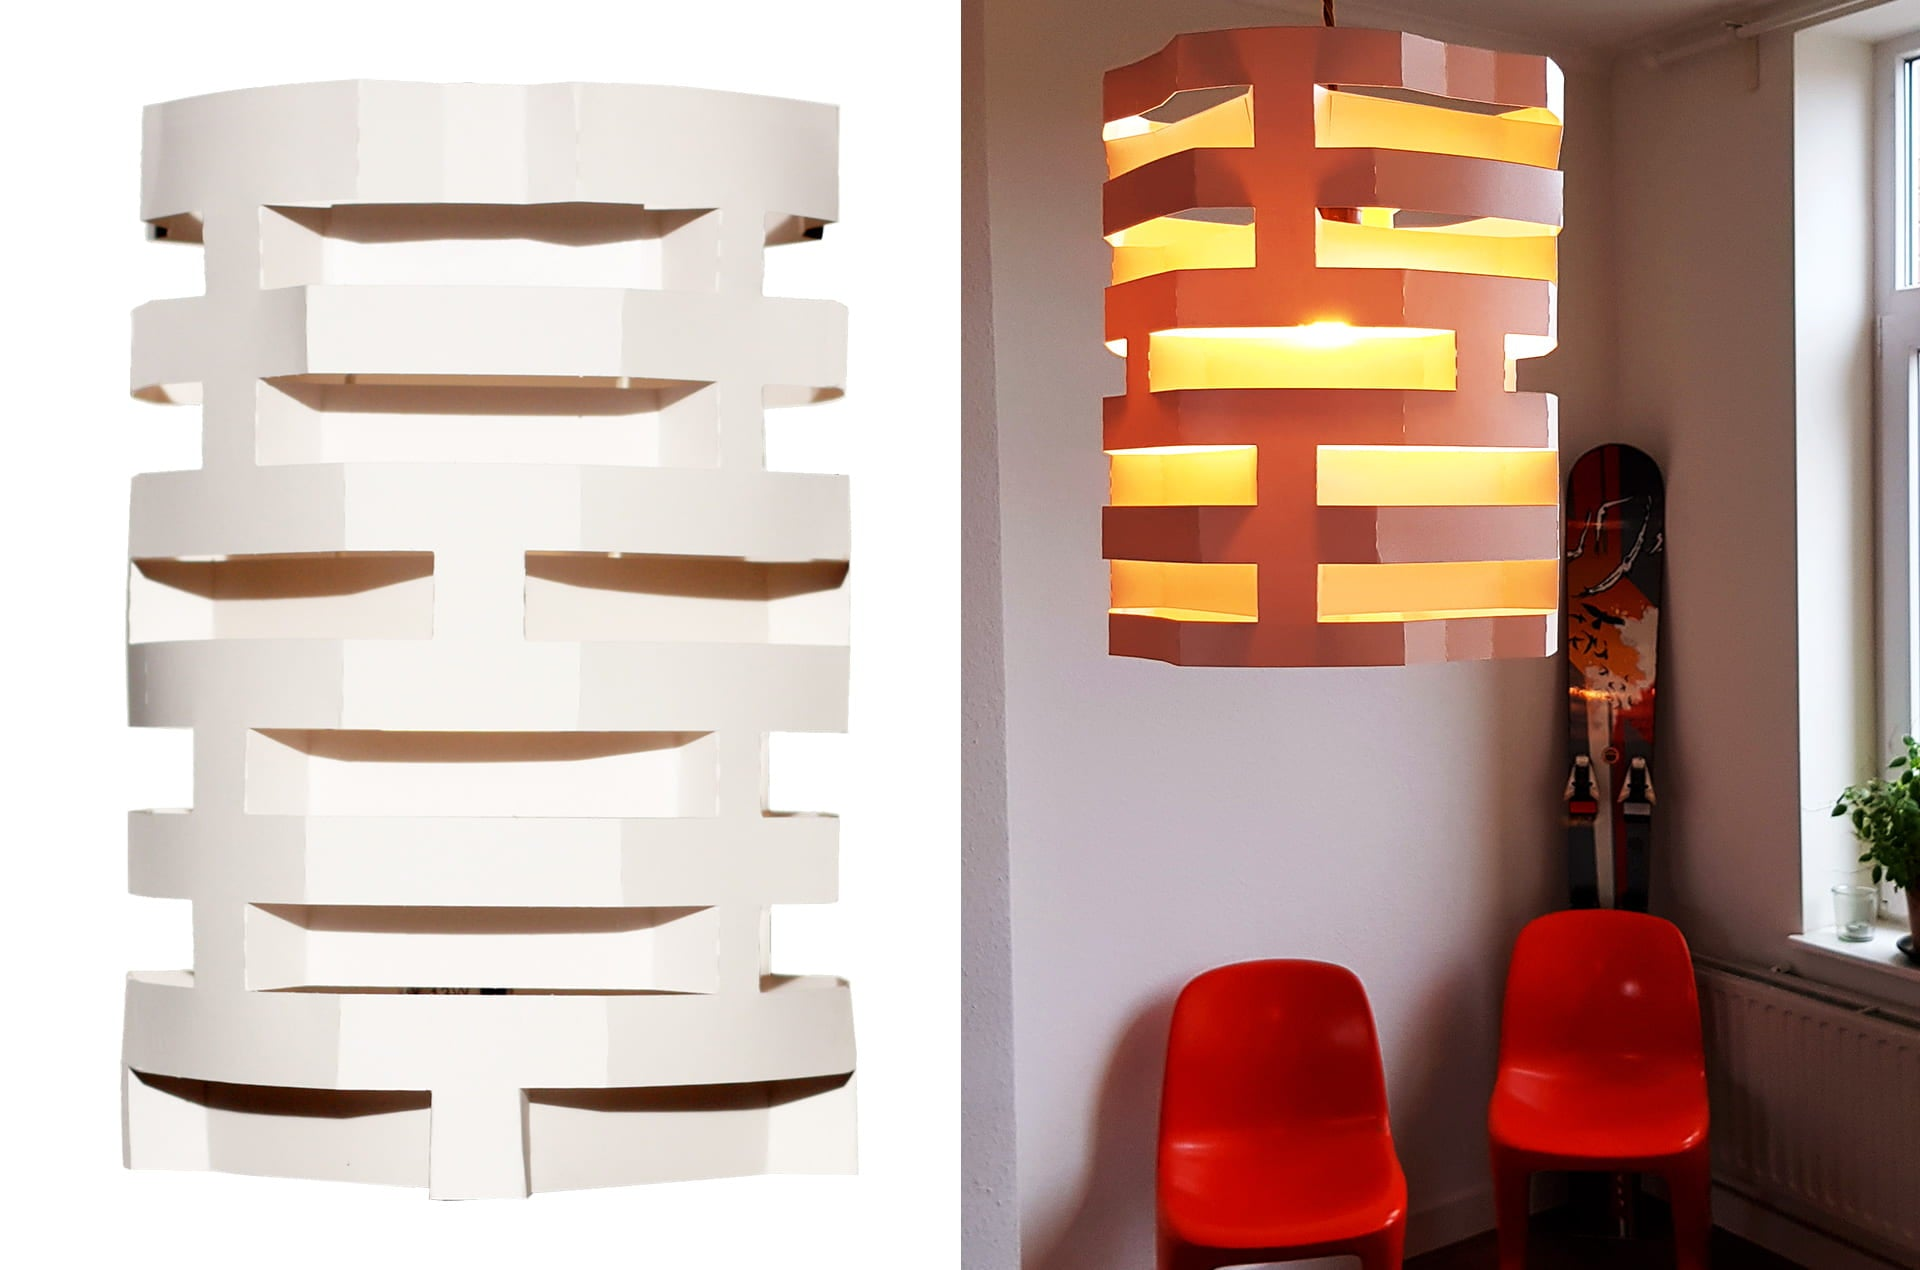 Abat-jour papier Stripes by Louis Theillier-en vente sur PARIDEO design durable